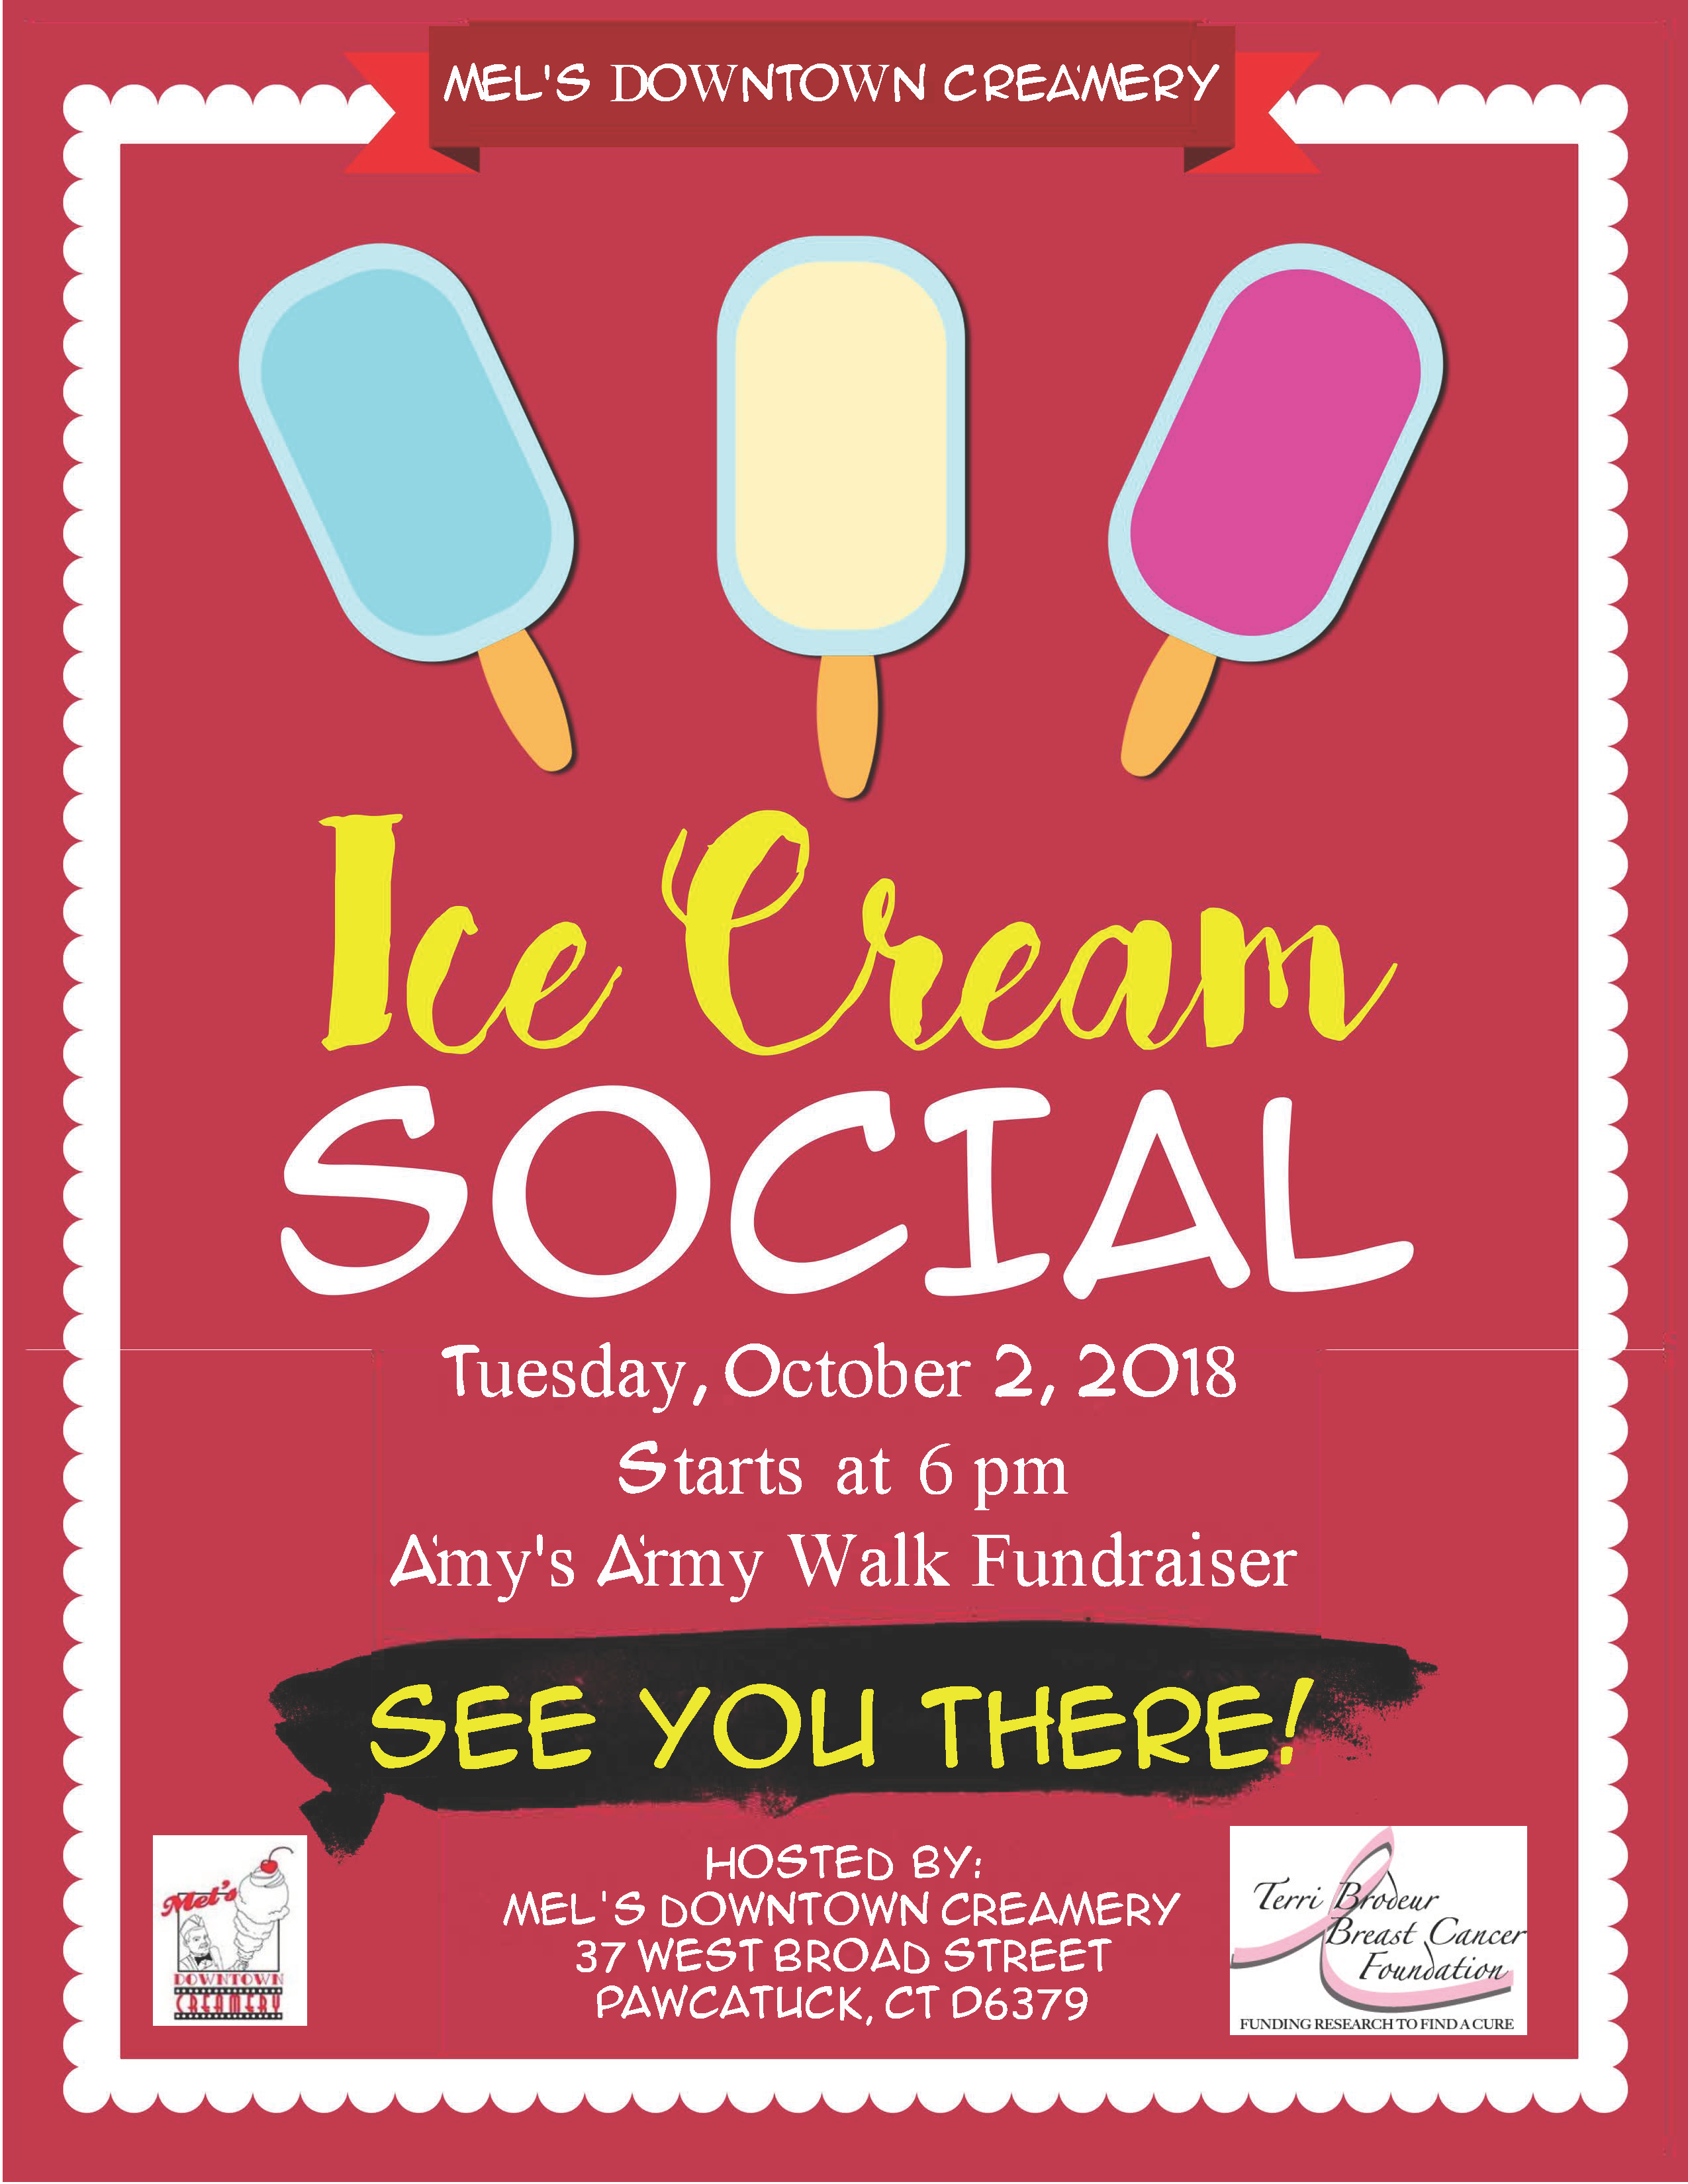 ice cream social flyer with amy edit terri brodeur breast cancer